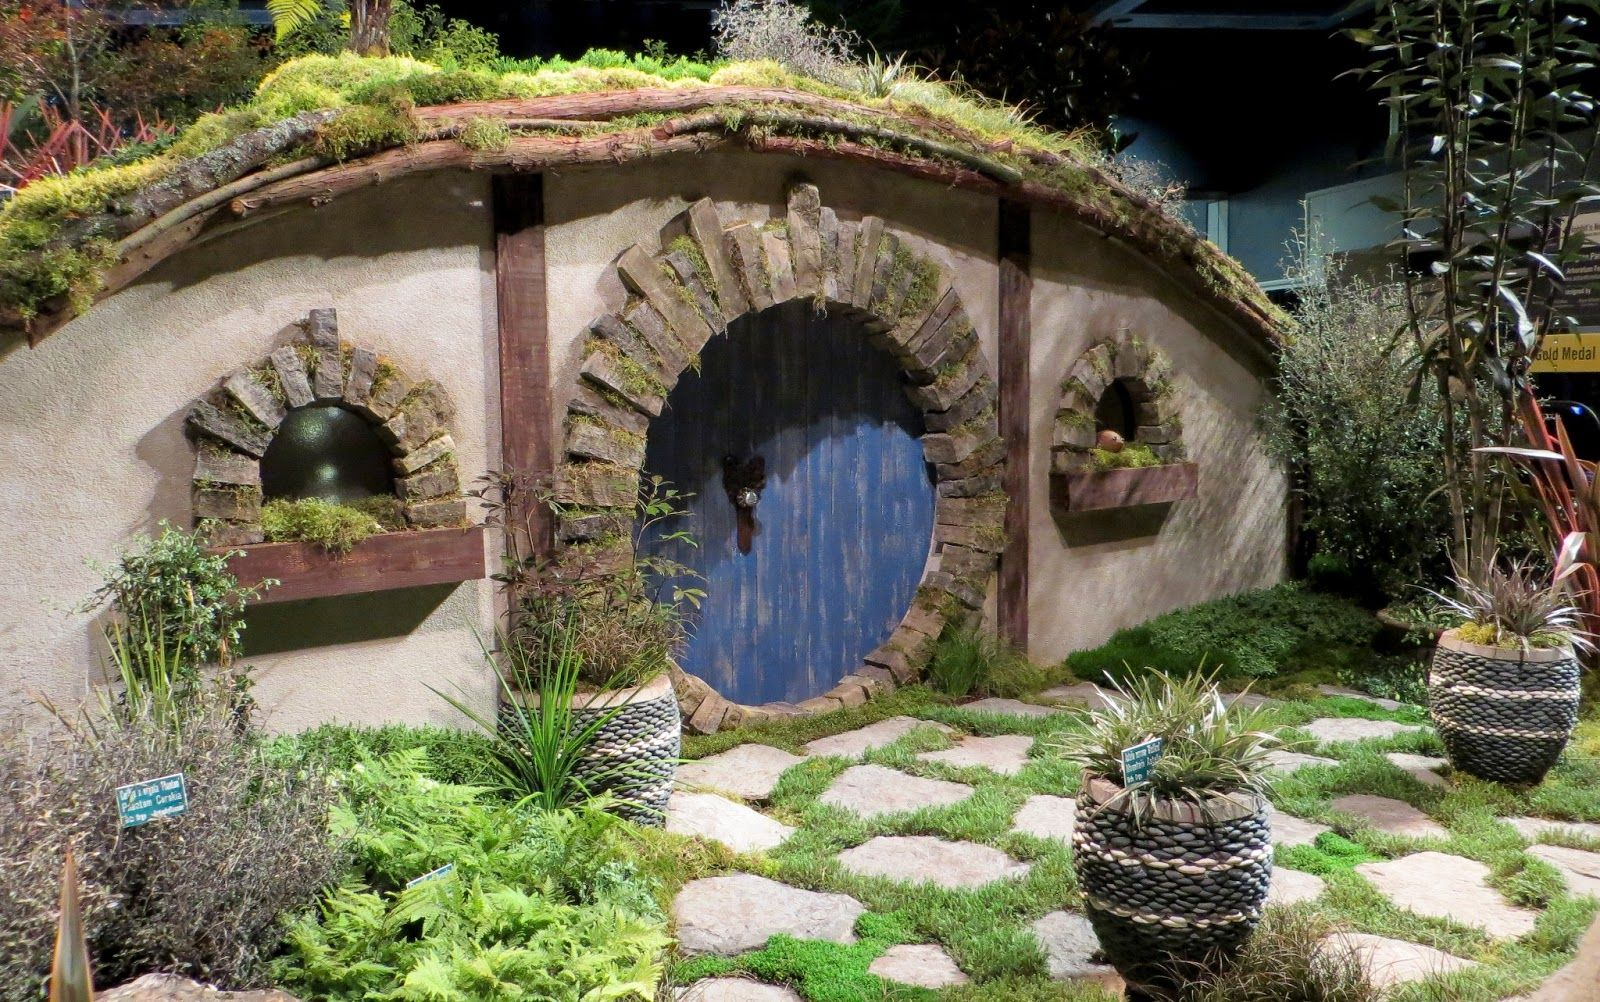 Golden Guys at the Garden Show: Phil Wood and Riz Reyes | Seattle Chinese Garden 西华园